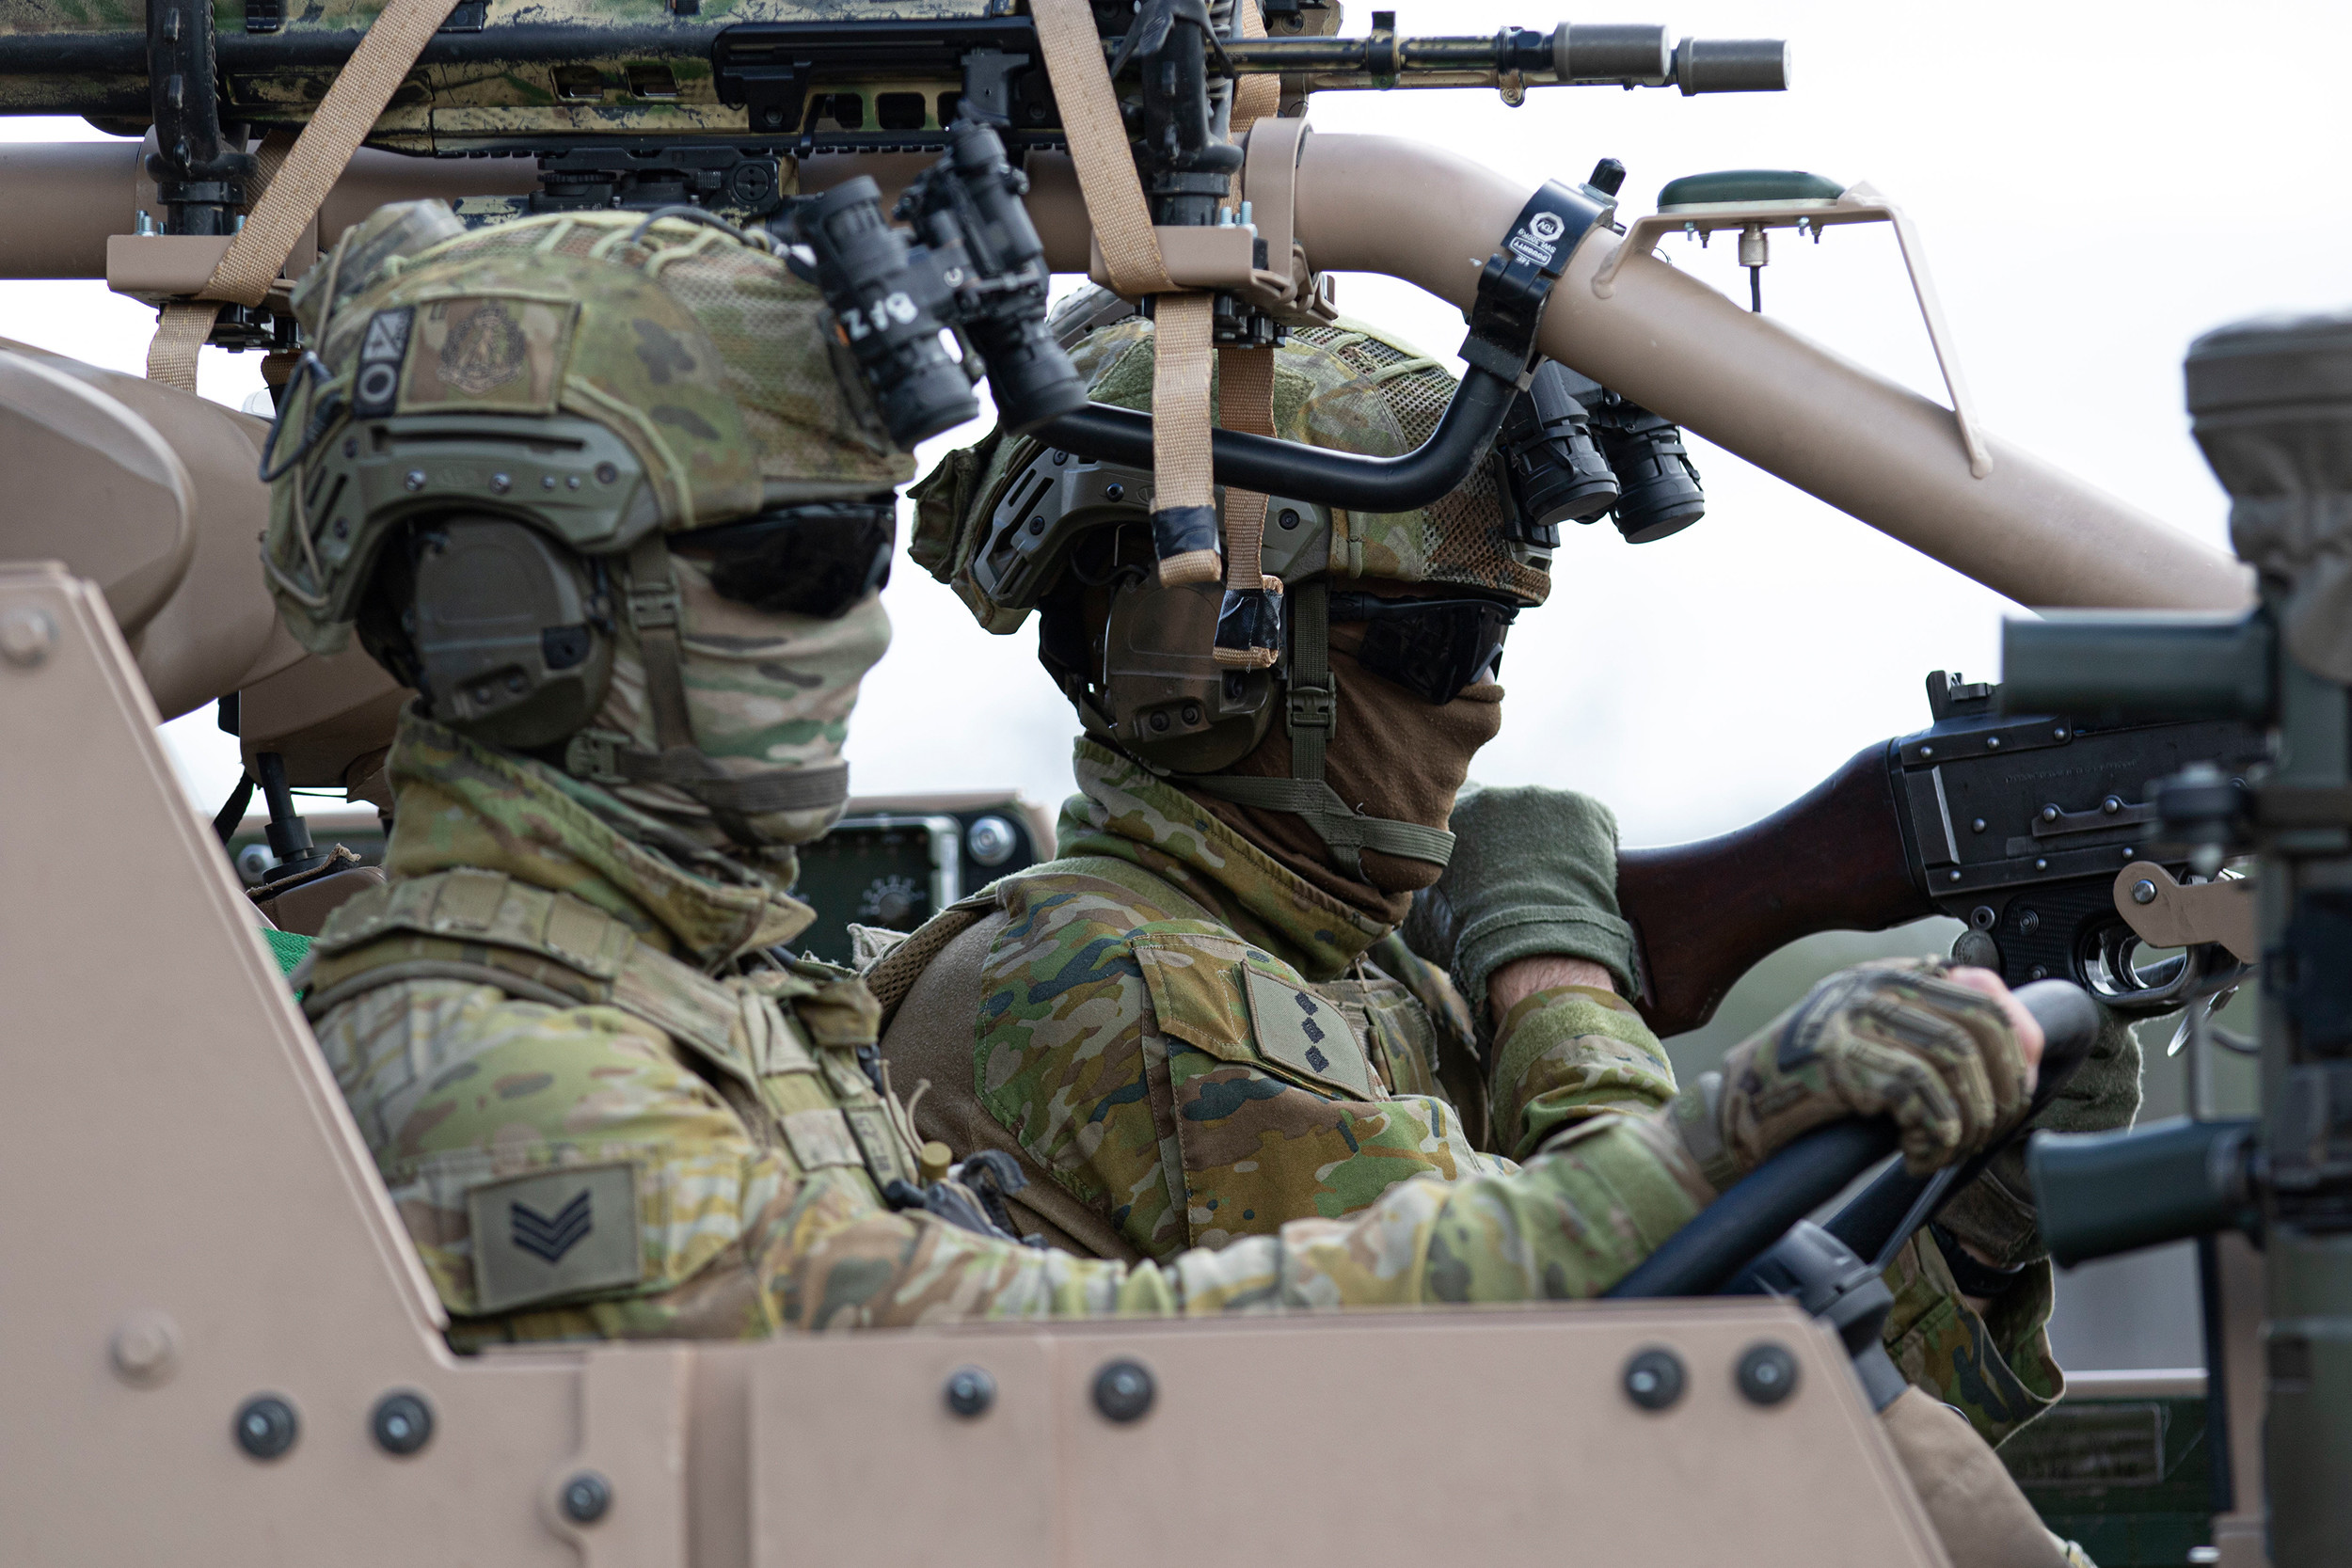 Exercise Talisman Sabre 2019: Demonstrates High Mobility